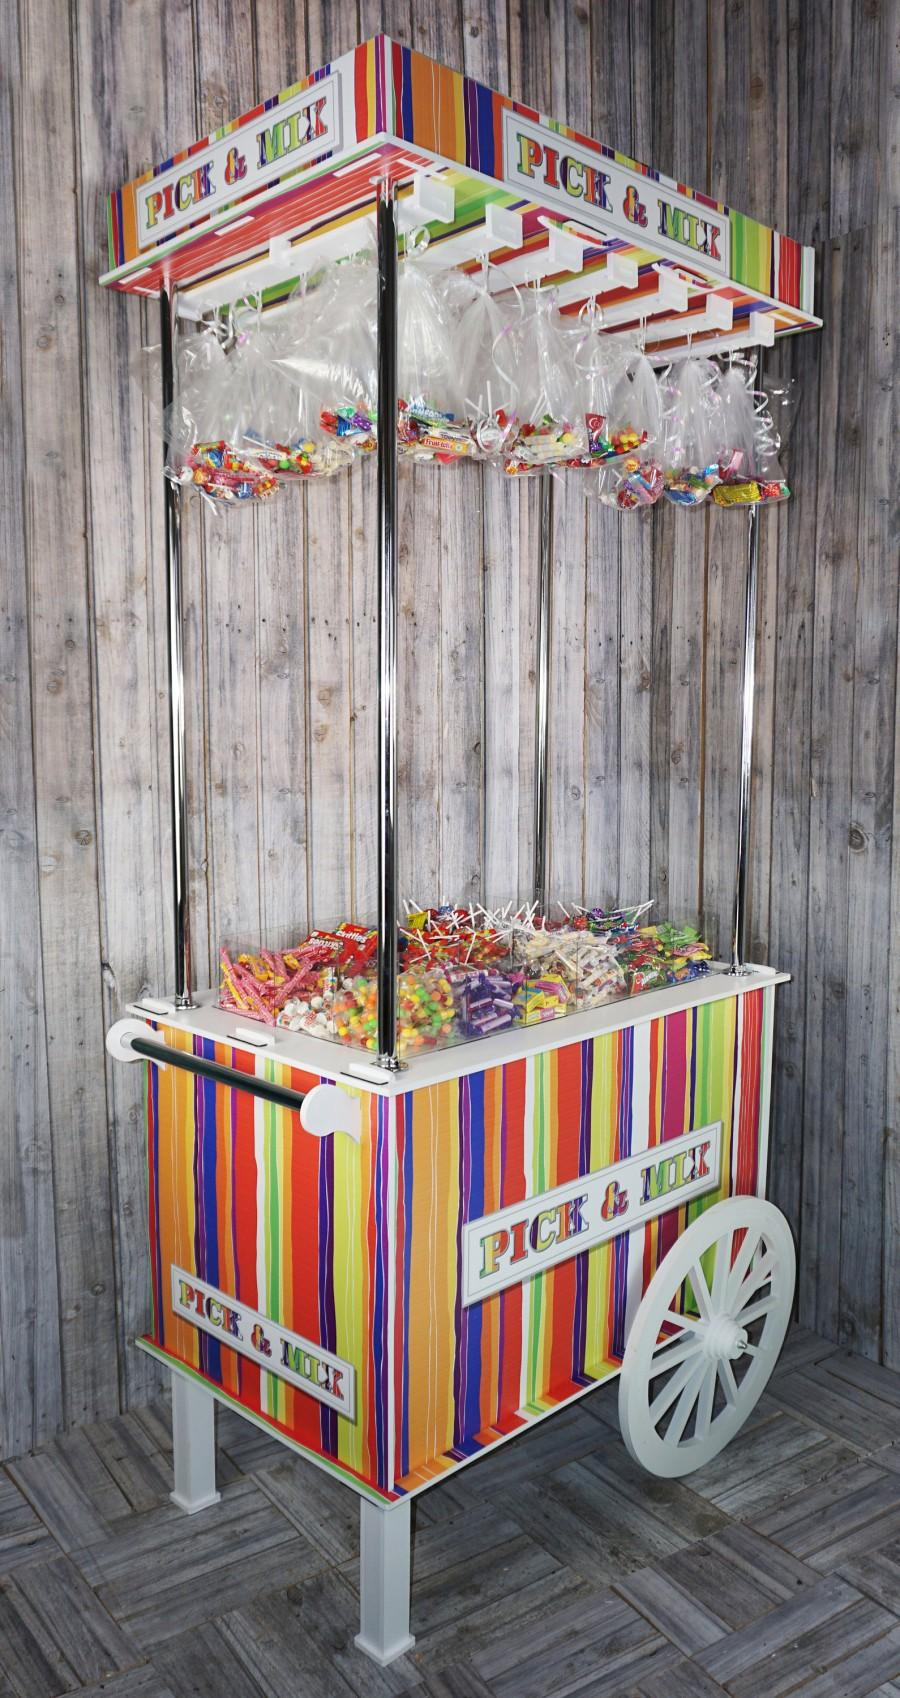 Свадьба - Sweet Cart, Candy Cart Various Sizes from 220cm (7ft) tall to 105cm (3ft) Tall, with Clear acrylic Top to Hold Sweets